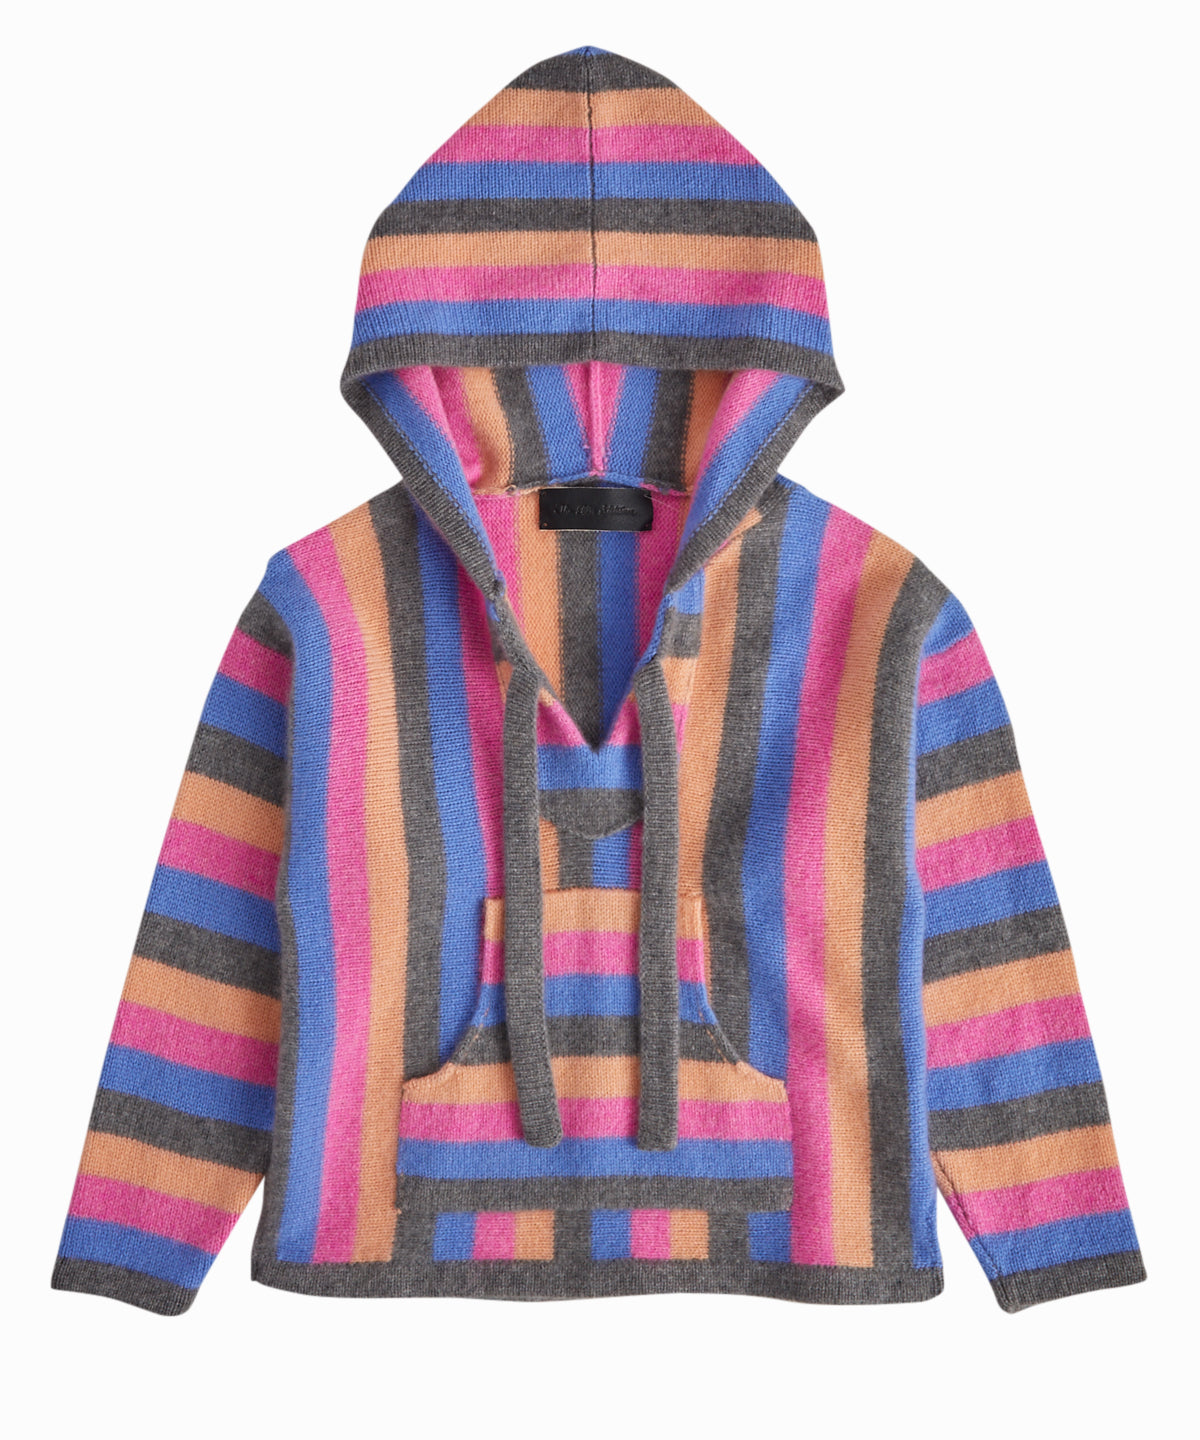 Exclusive Baja Hooded Cashmere Sweater